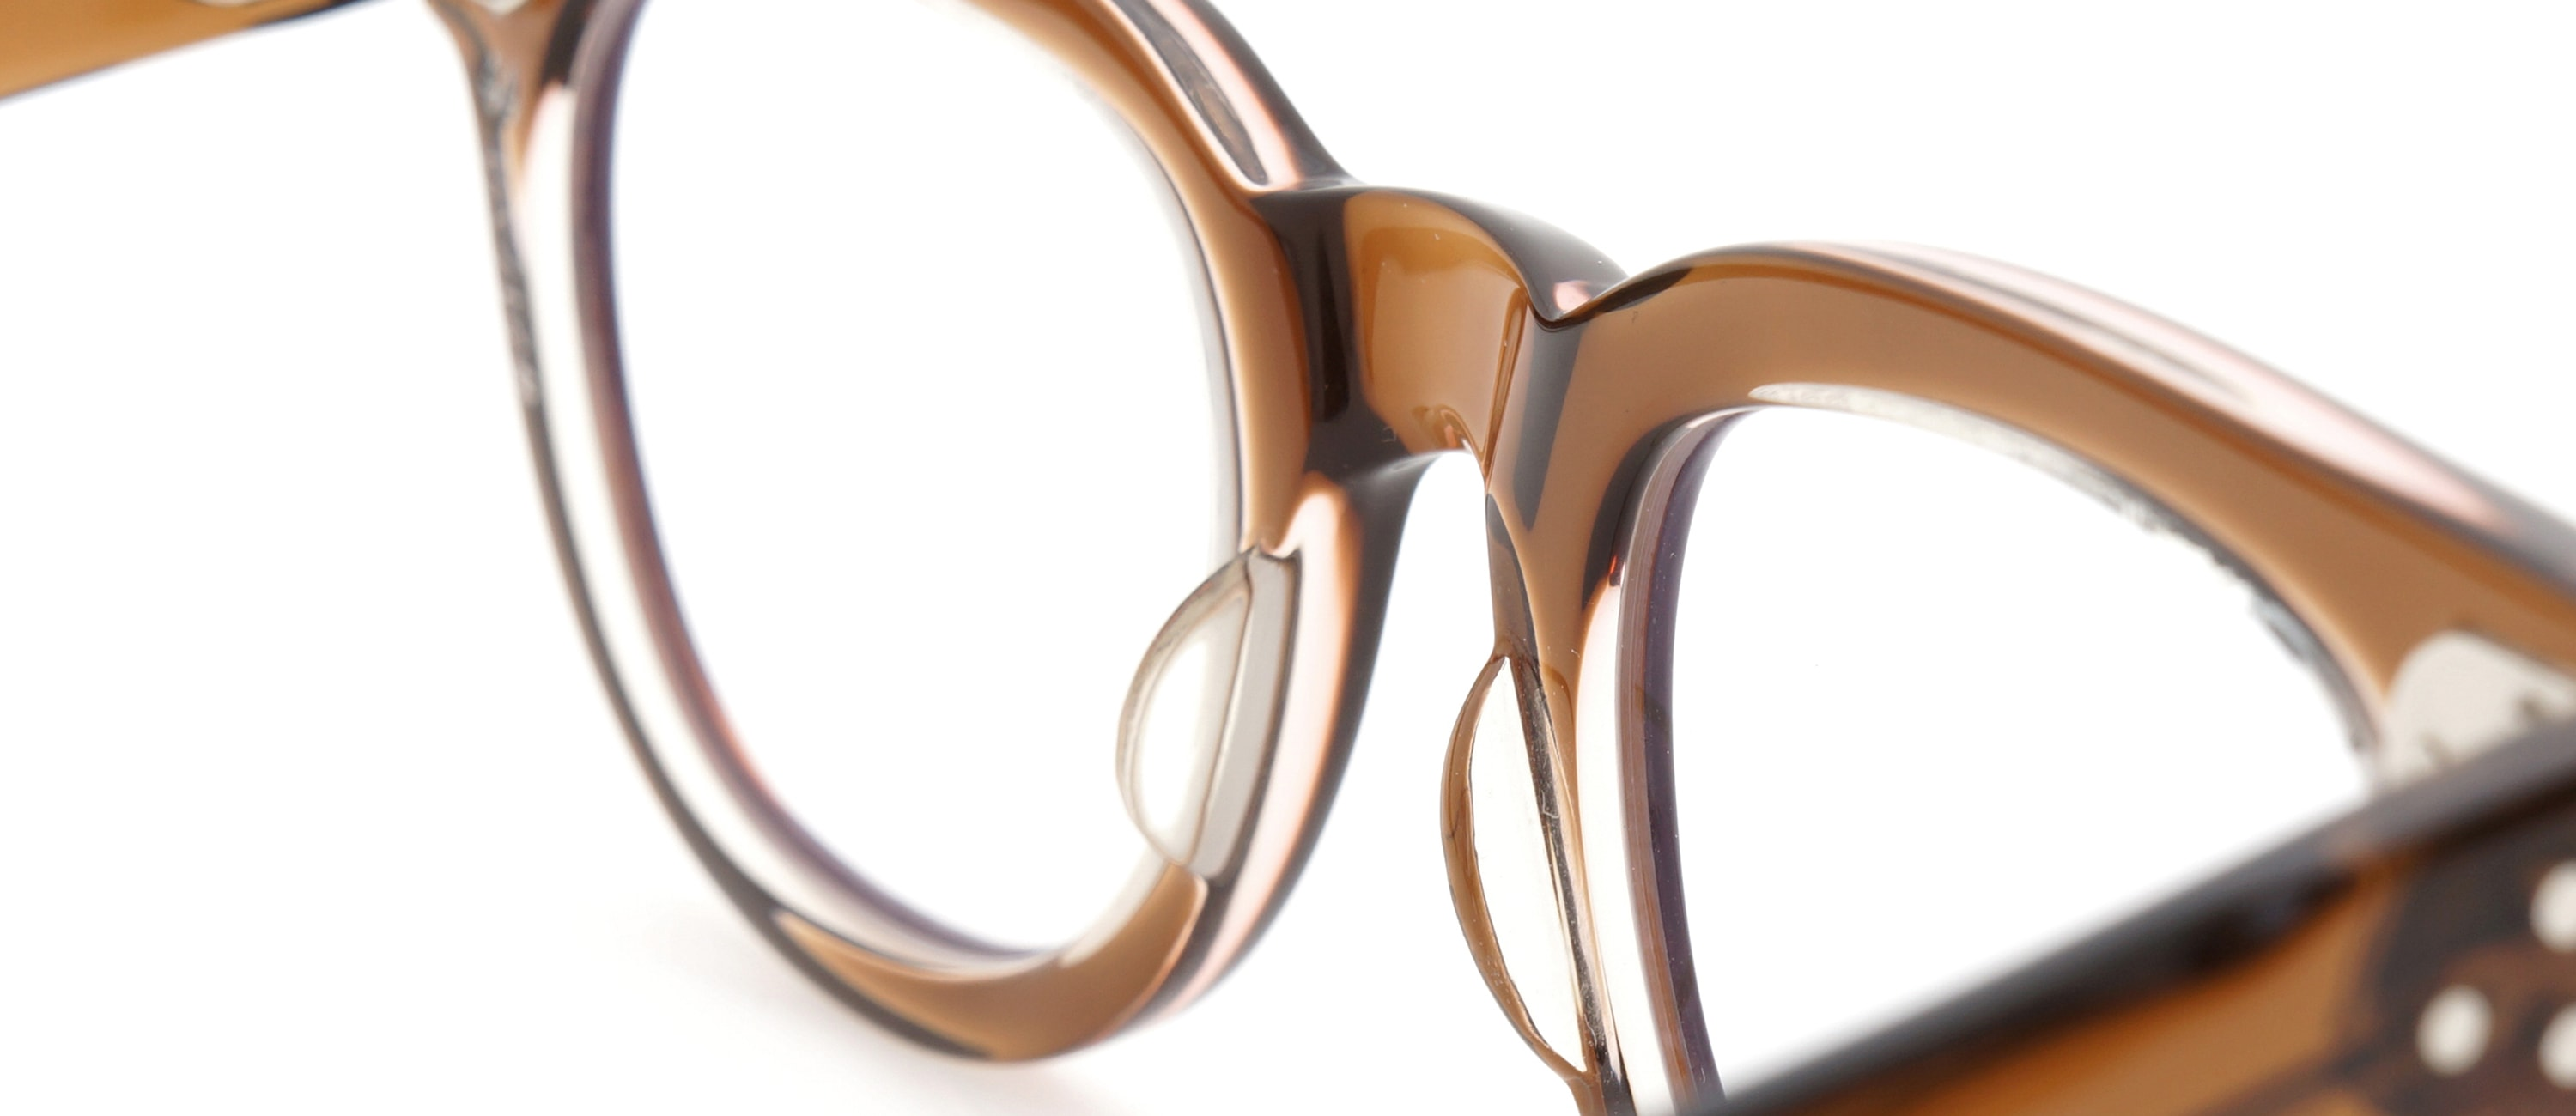 The Spectacle メガネ 1950s-70s TART OPTICAL FDR (FRAME USA) BROWN 44-22 イメージ10